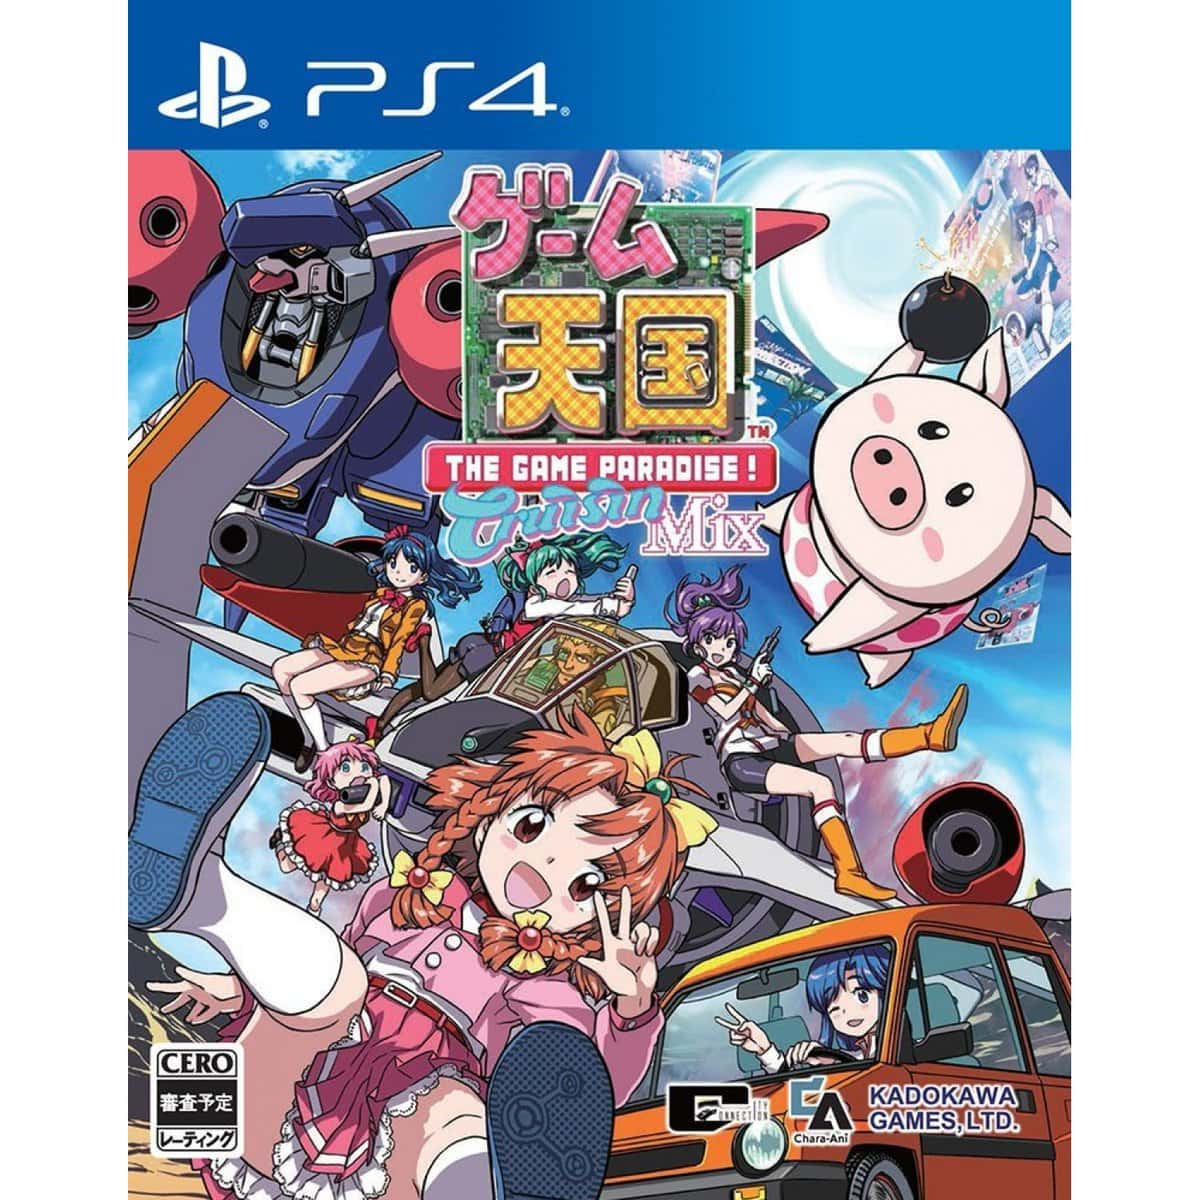 game paradise cruisin mix physical play asia ps4 cover